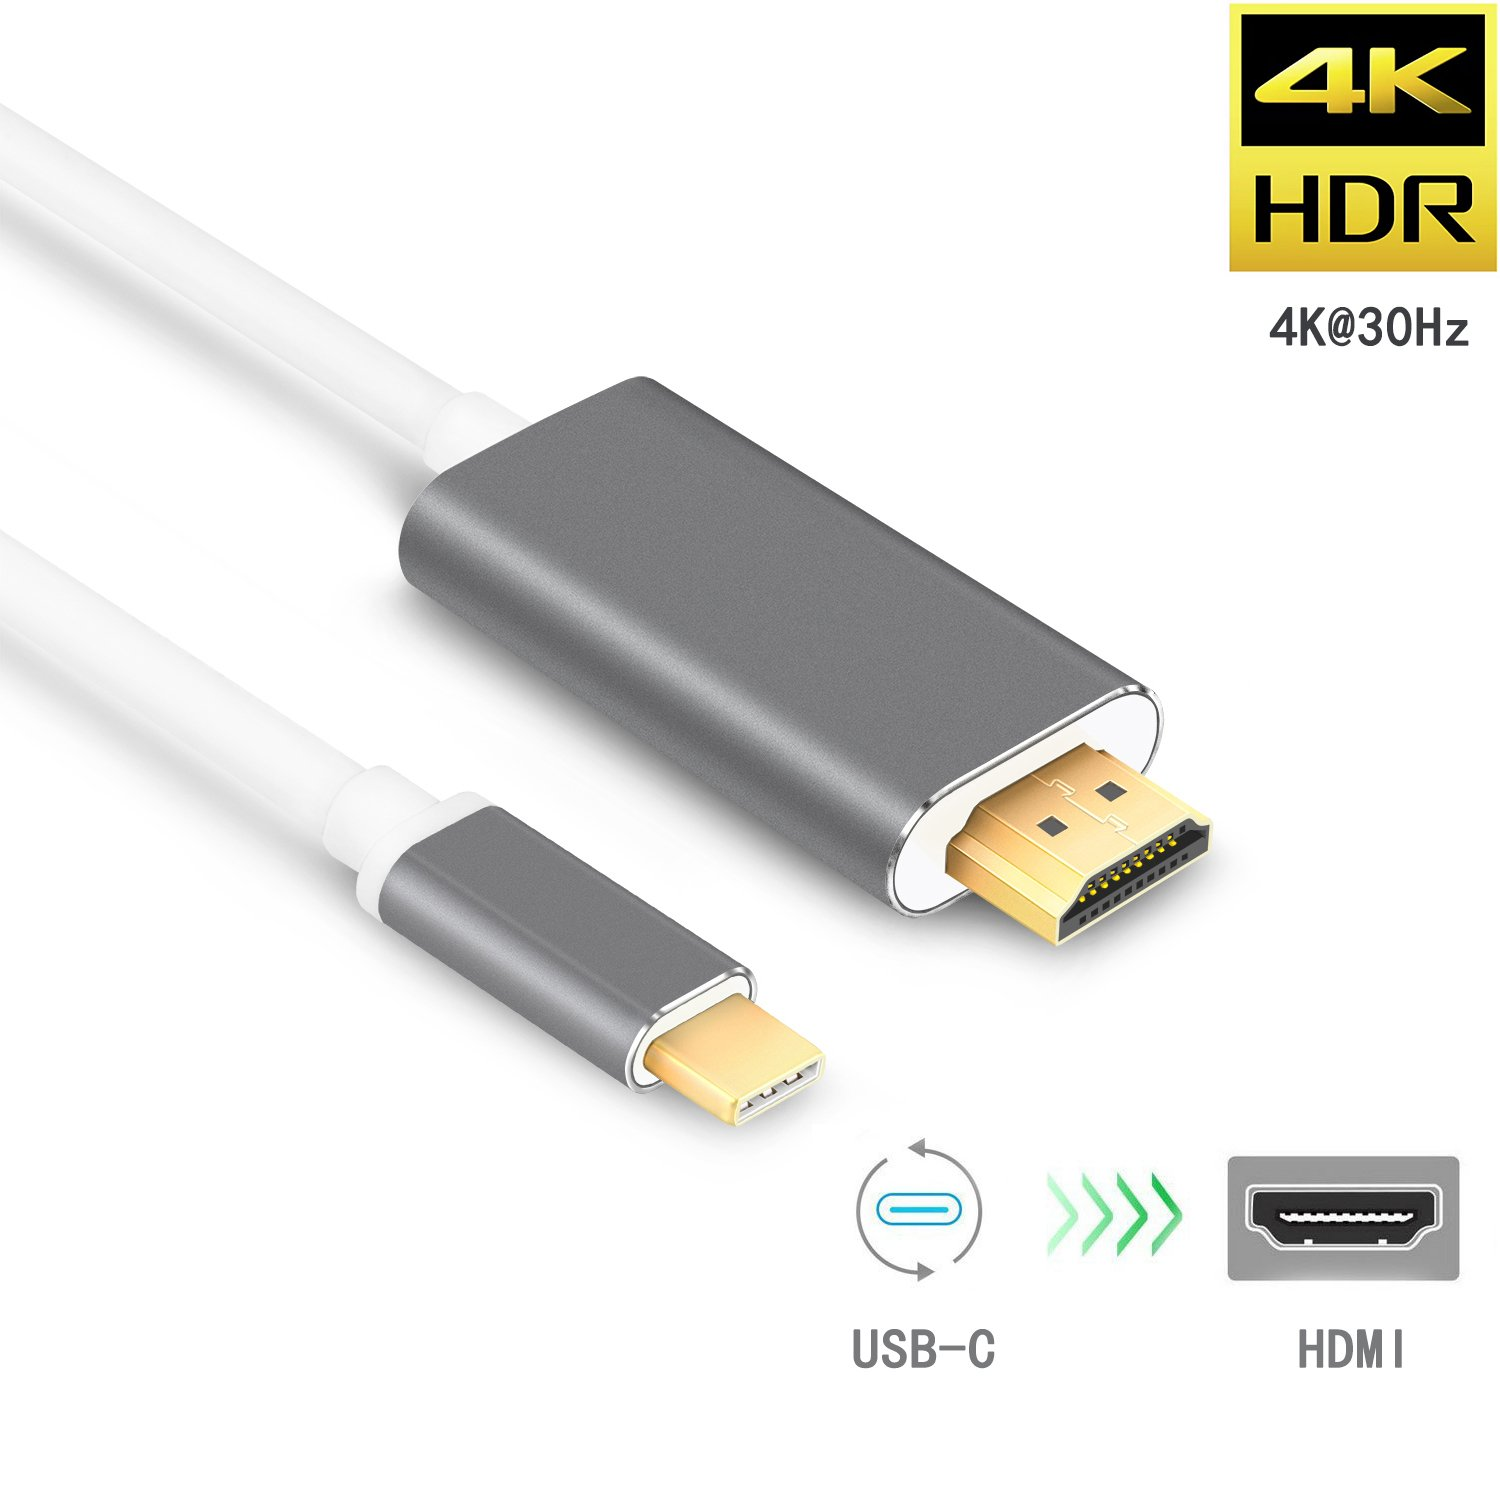 VICTEK USB-C to HDMI Cable 5.9ft/1.8m (Thunderbolt 3 Compatible), USB 3.1 Type-C Male to HDMI Male Cable 4K@30Hz Adapter Cable for 2016 MacBook Pro, 2015 Macbook, Samsung Galaxy S8/S8+